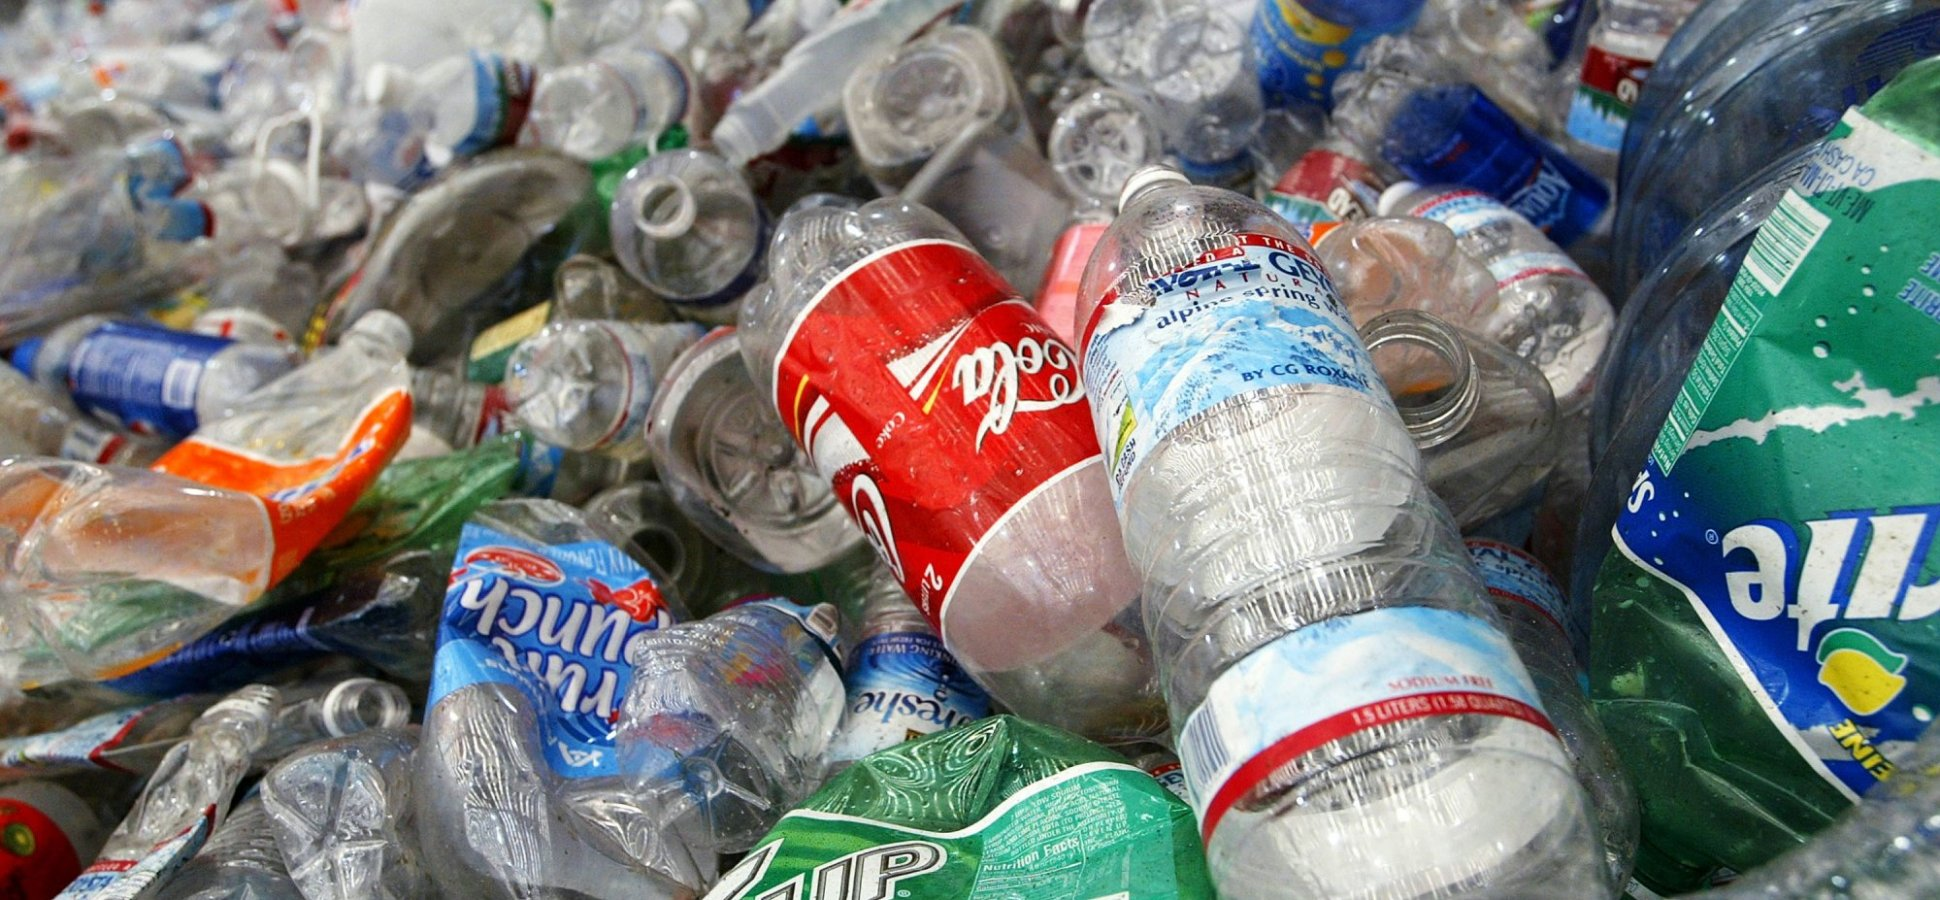 Should We Stop Recycling? The Answer Might Surprise You.